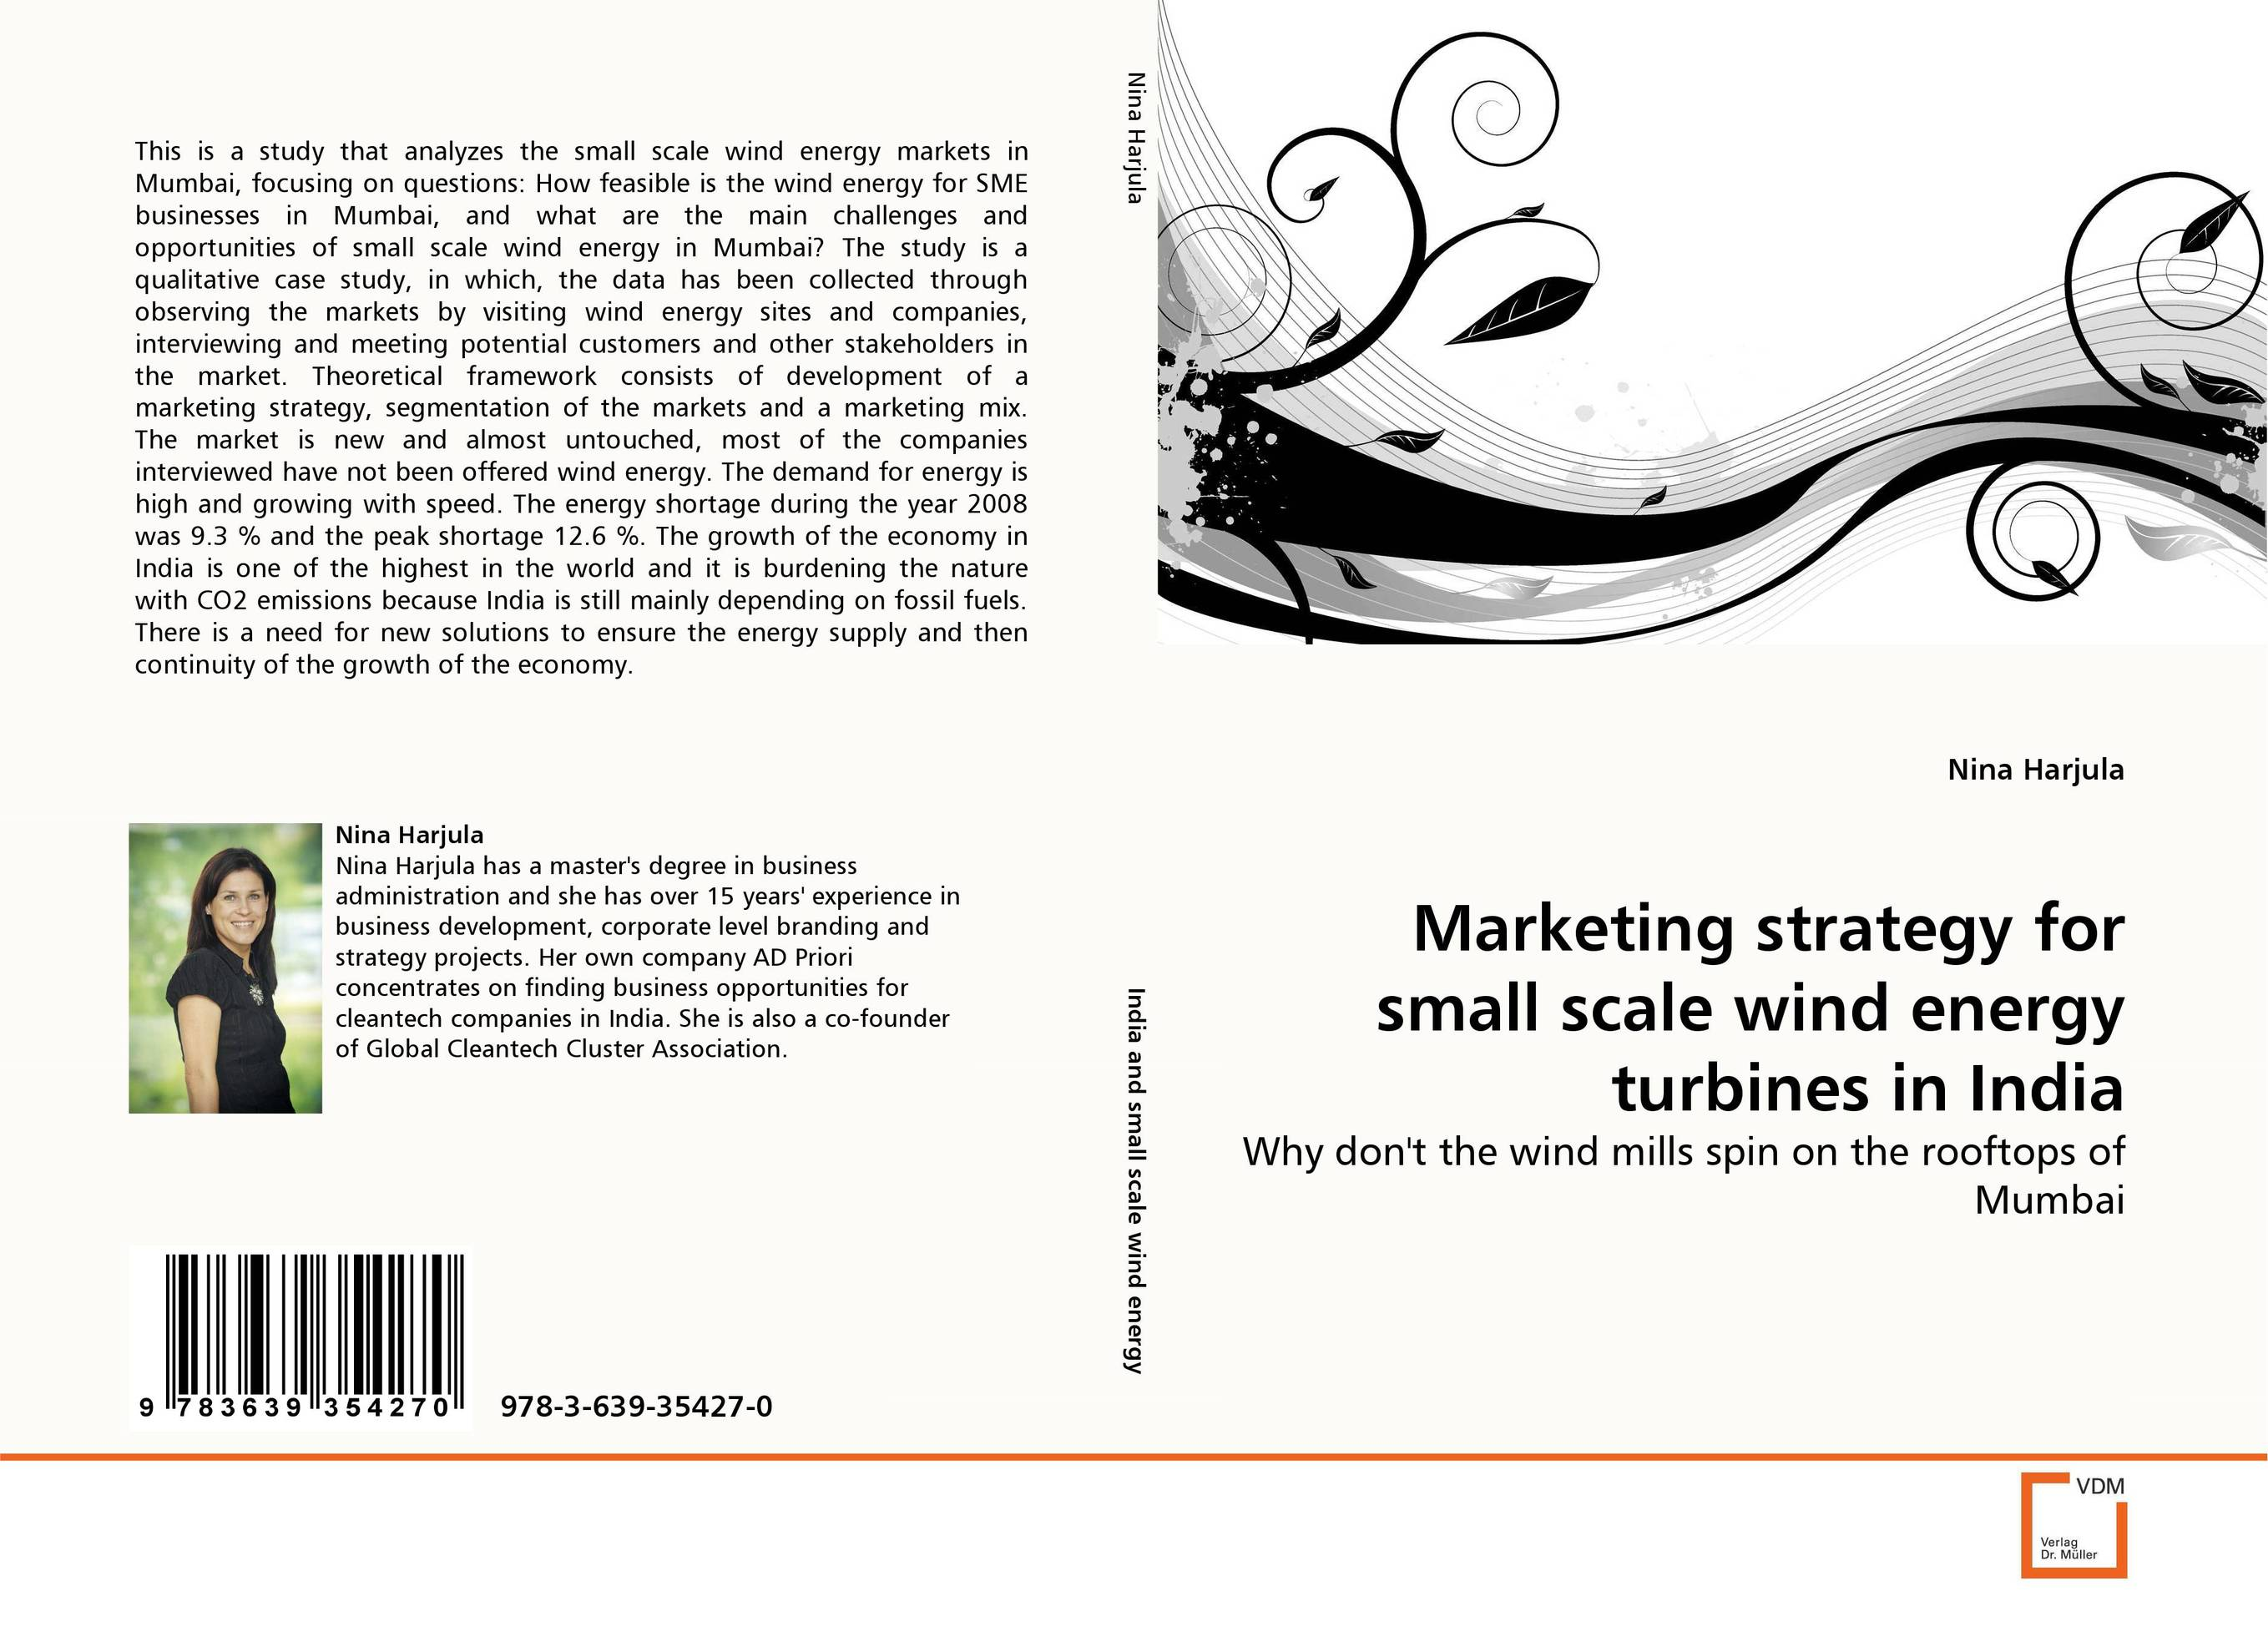 Marketing strategy for small scale wind energy turbines in India lacalle daniel the energy world is flat